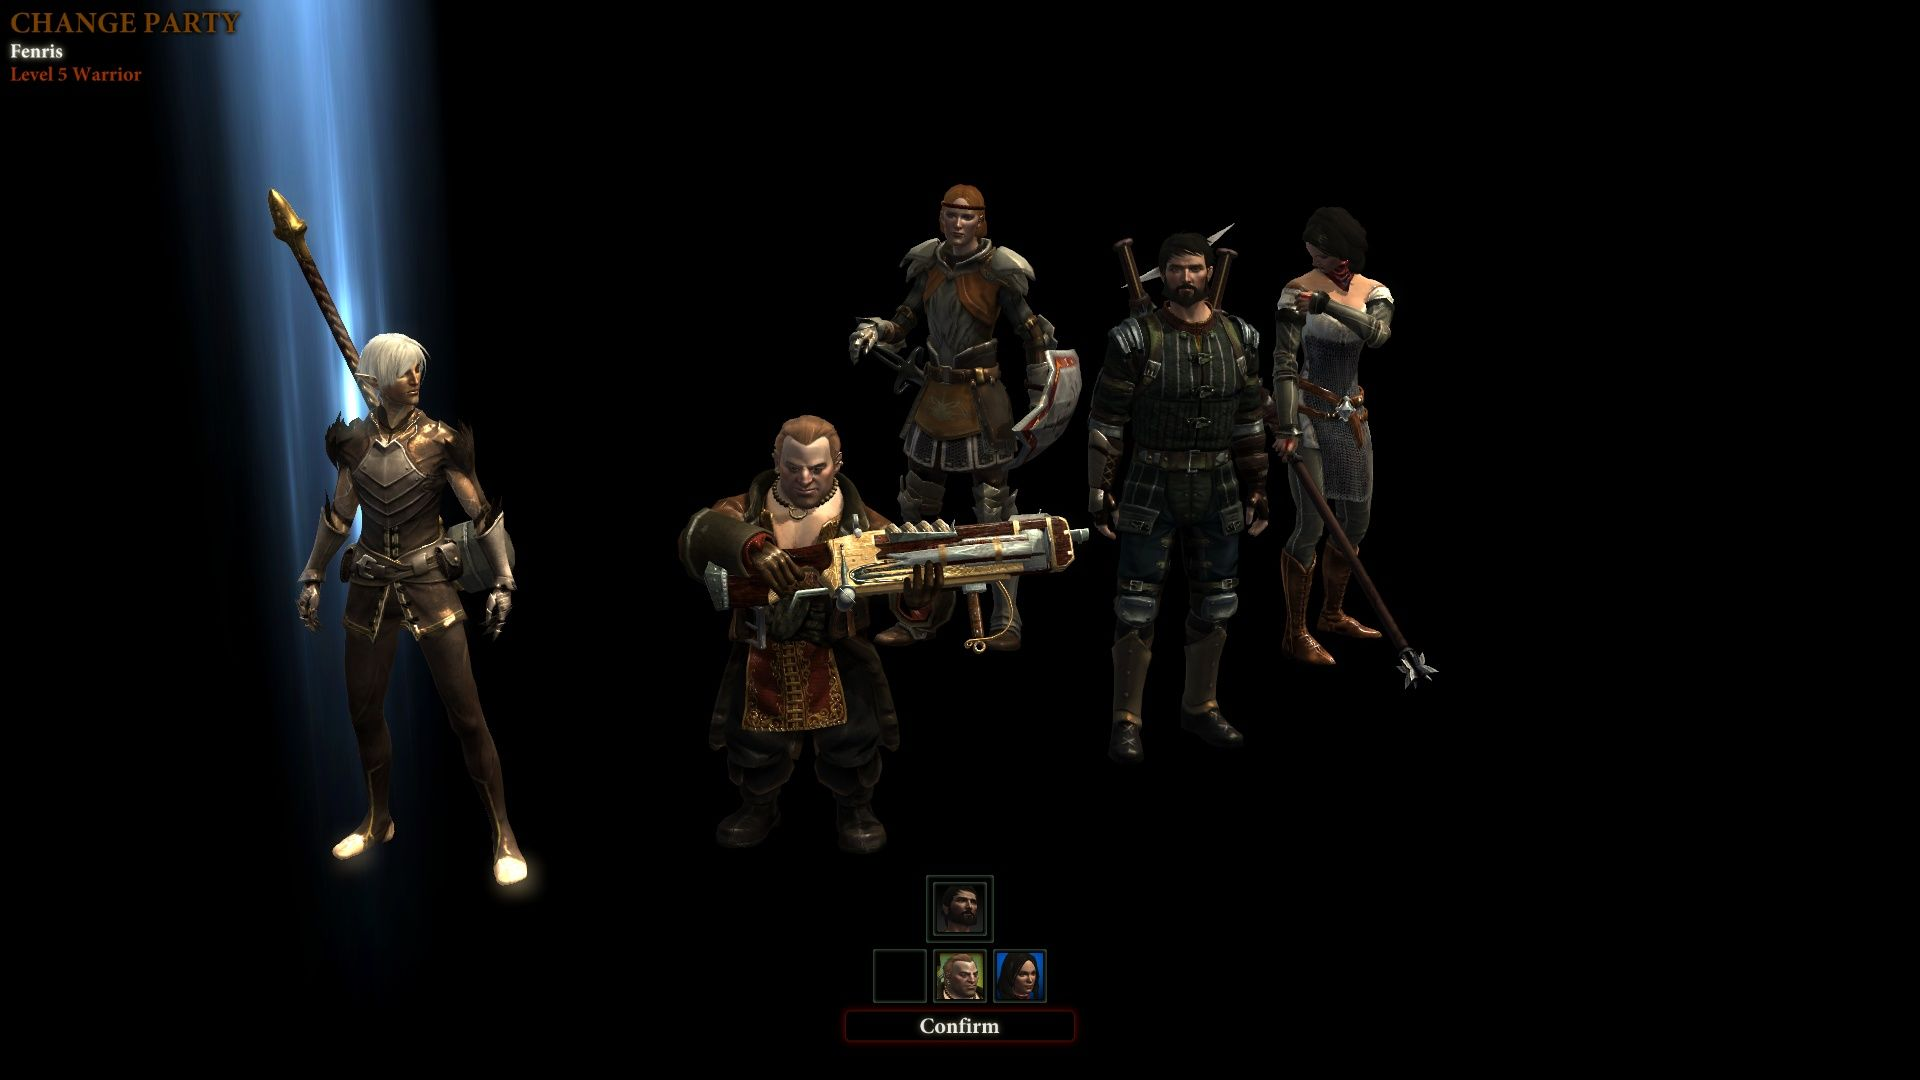 Dragon Age II Windows Party selection screen.